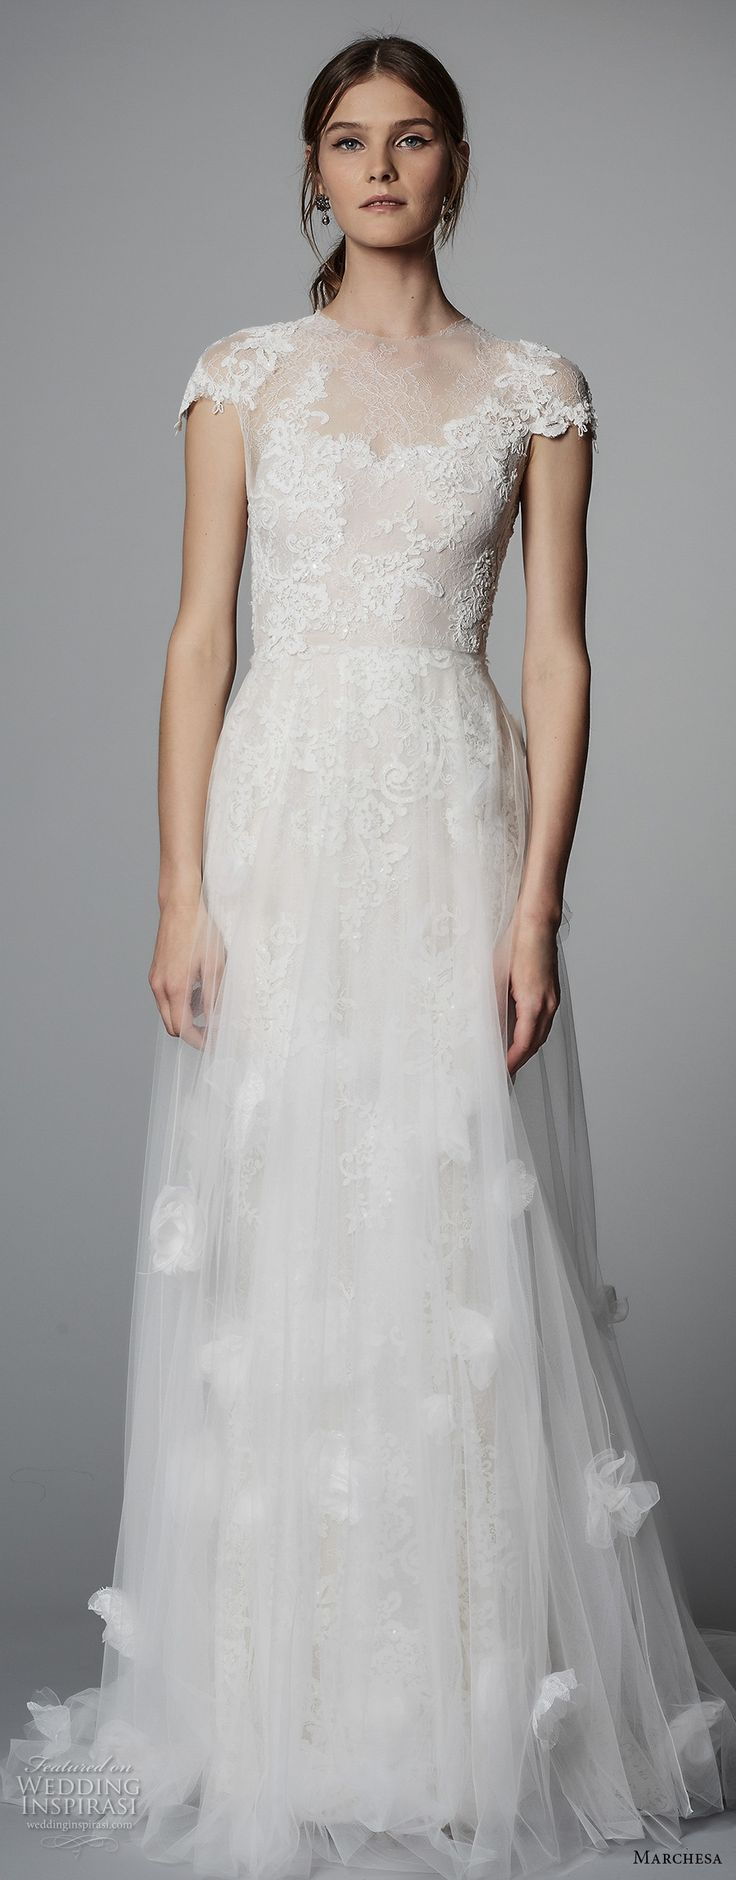 marchesa spring 2018 bridal cap sleeves illusion jewel sweetheart neckline heavily embellished bodice tulle skirt romantic a line wedding dress sheer lace back chapel train (05) mv zv -- Marchesa Bridal Spring 2018 Wedding Dresses